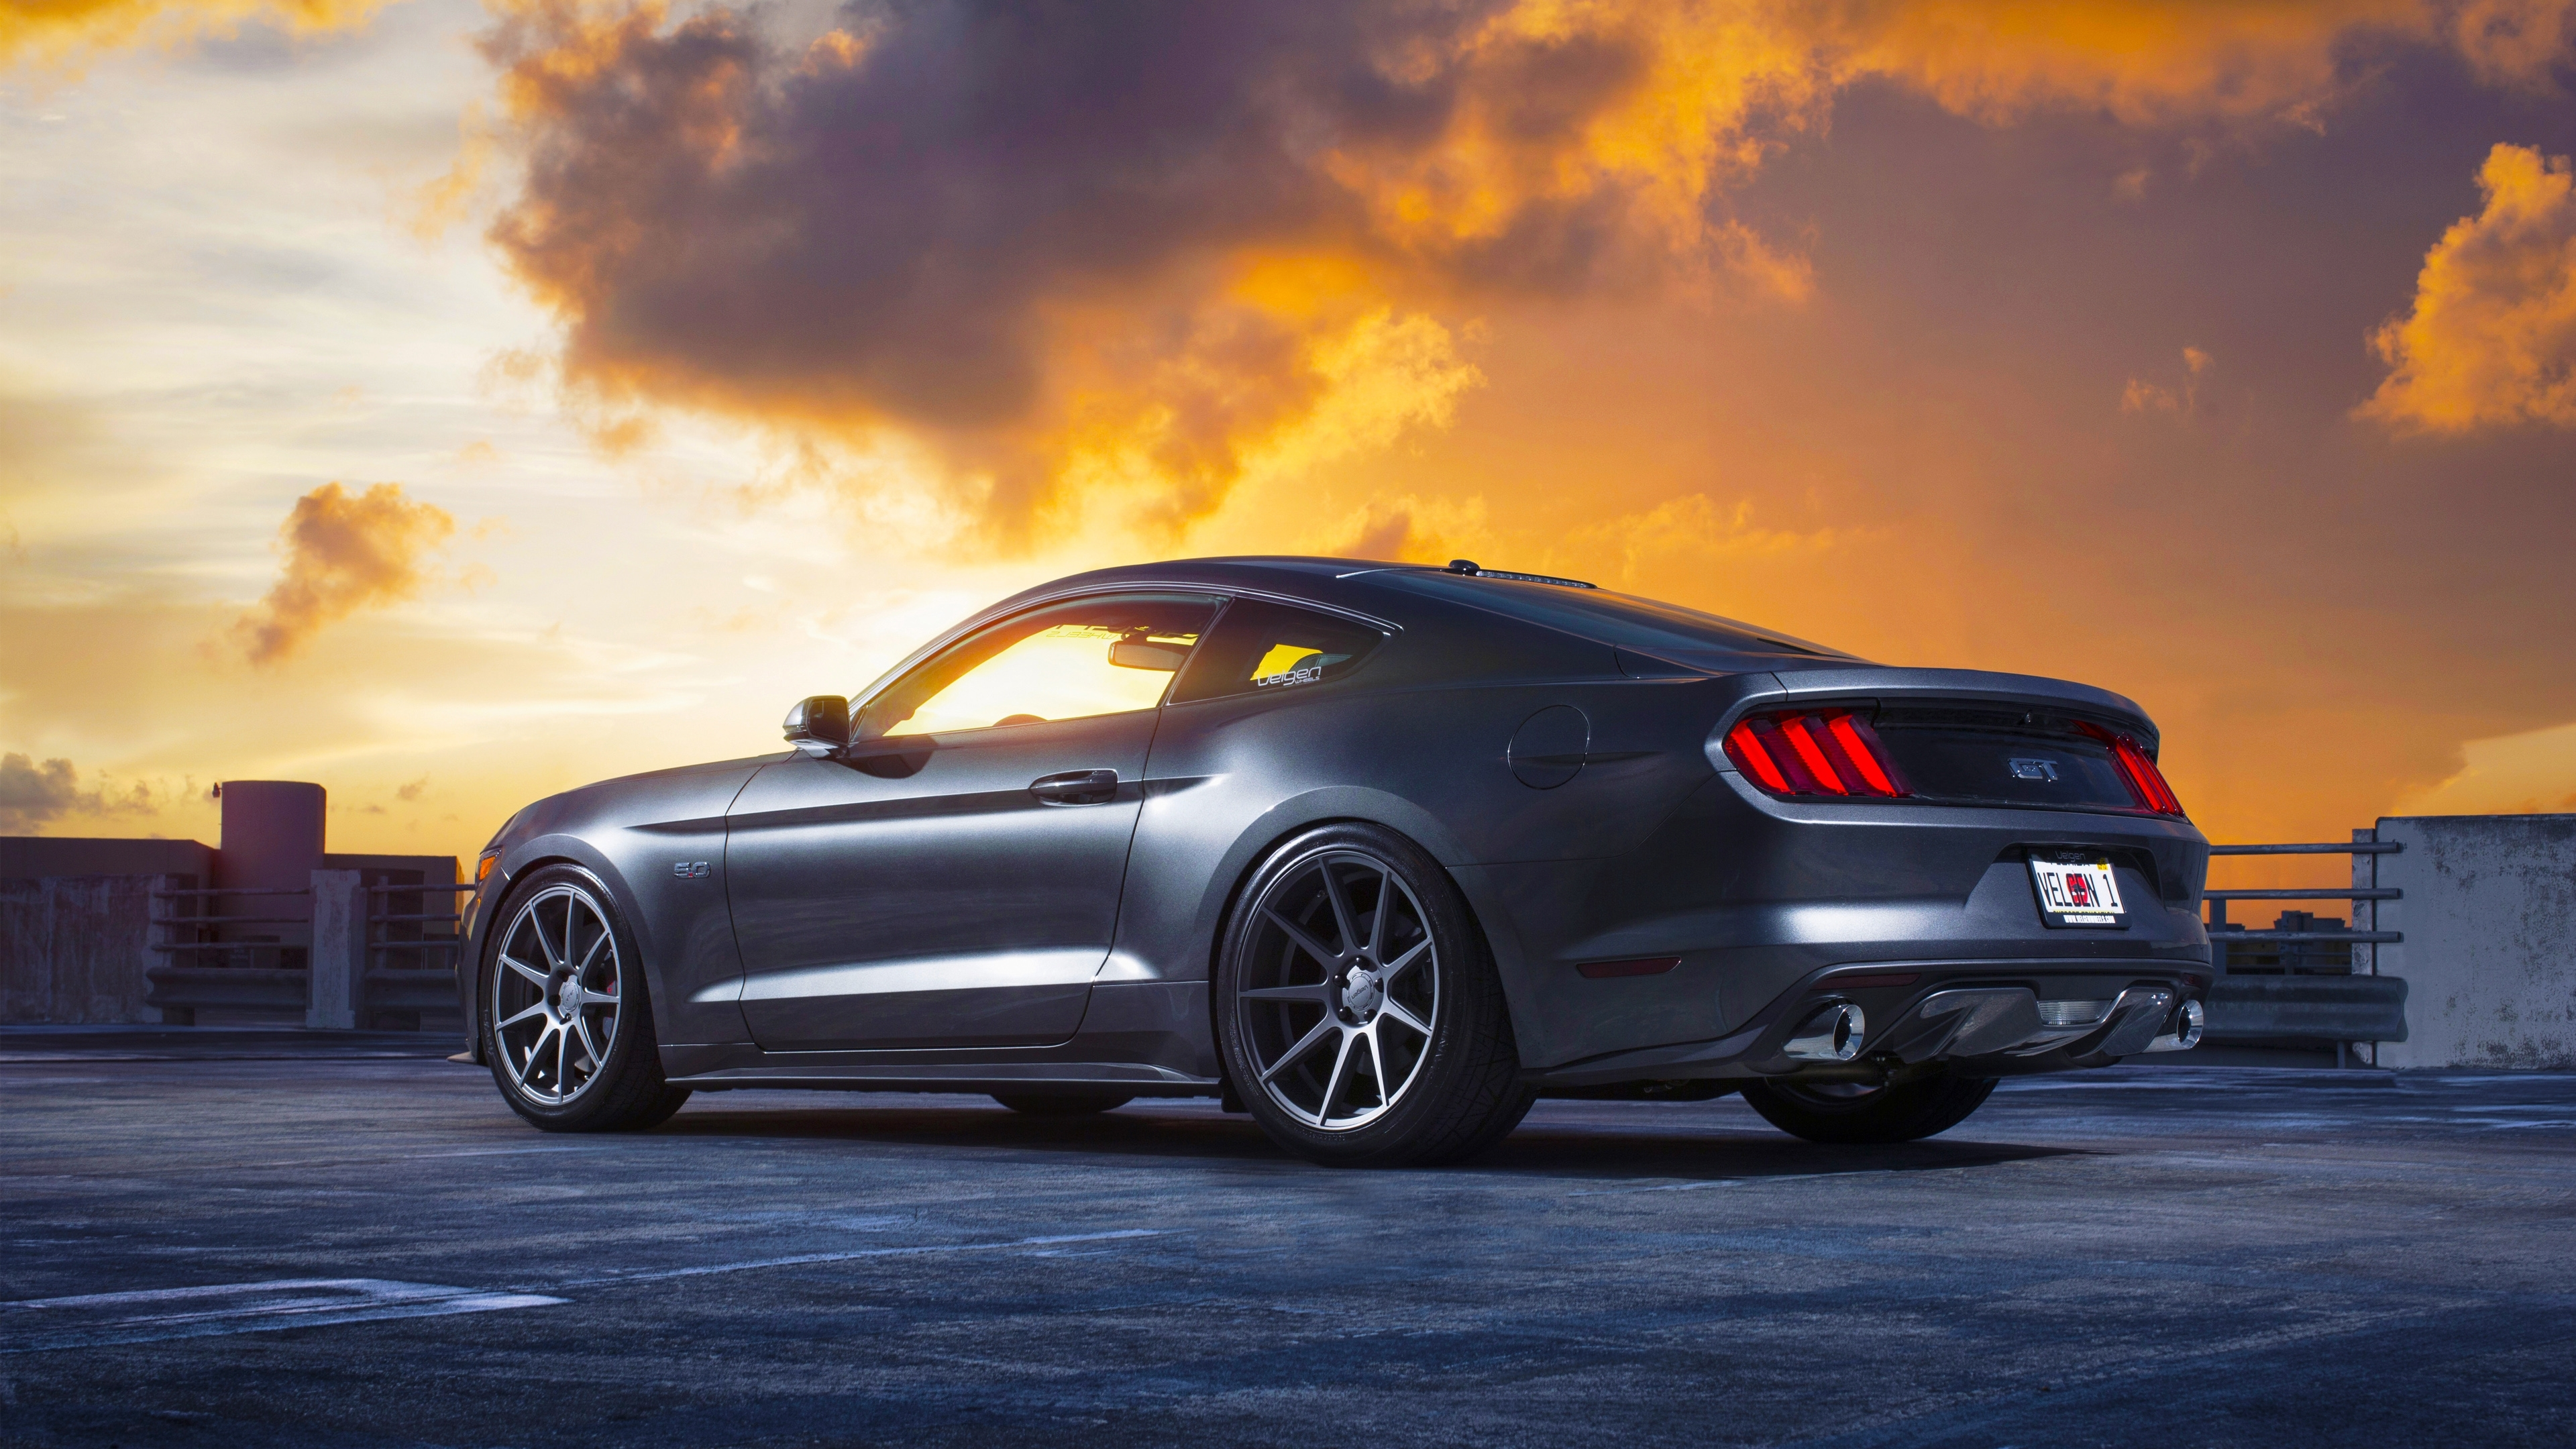 10 Latest 2016 Mustang Gt Wallpaper Full Hd 1920 1080 For Pc